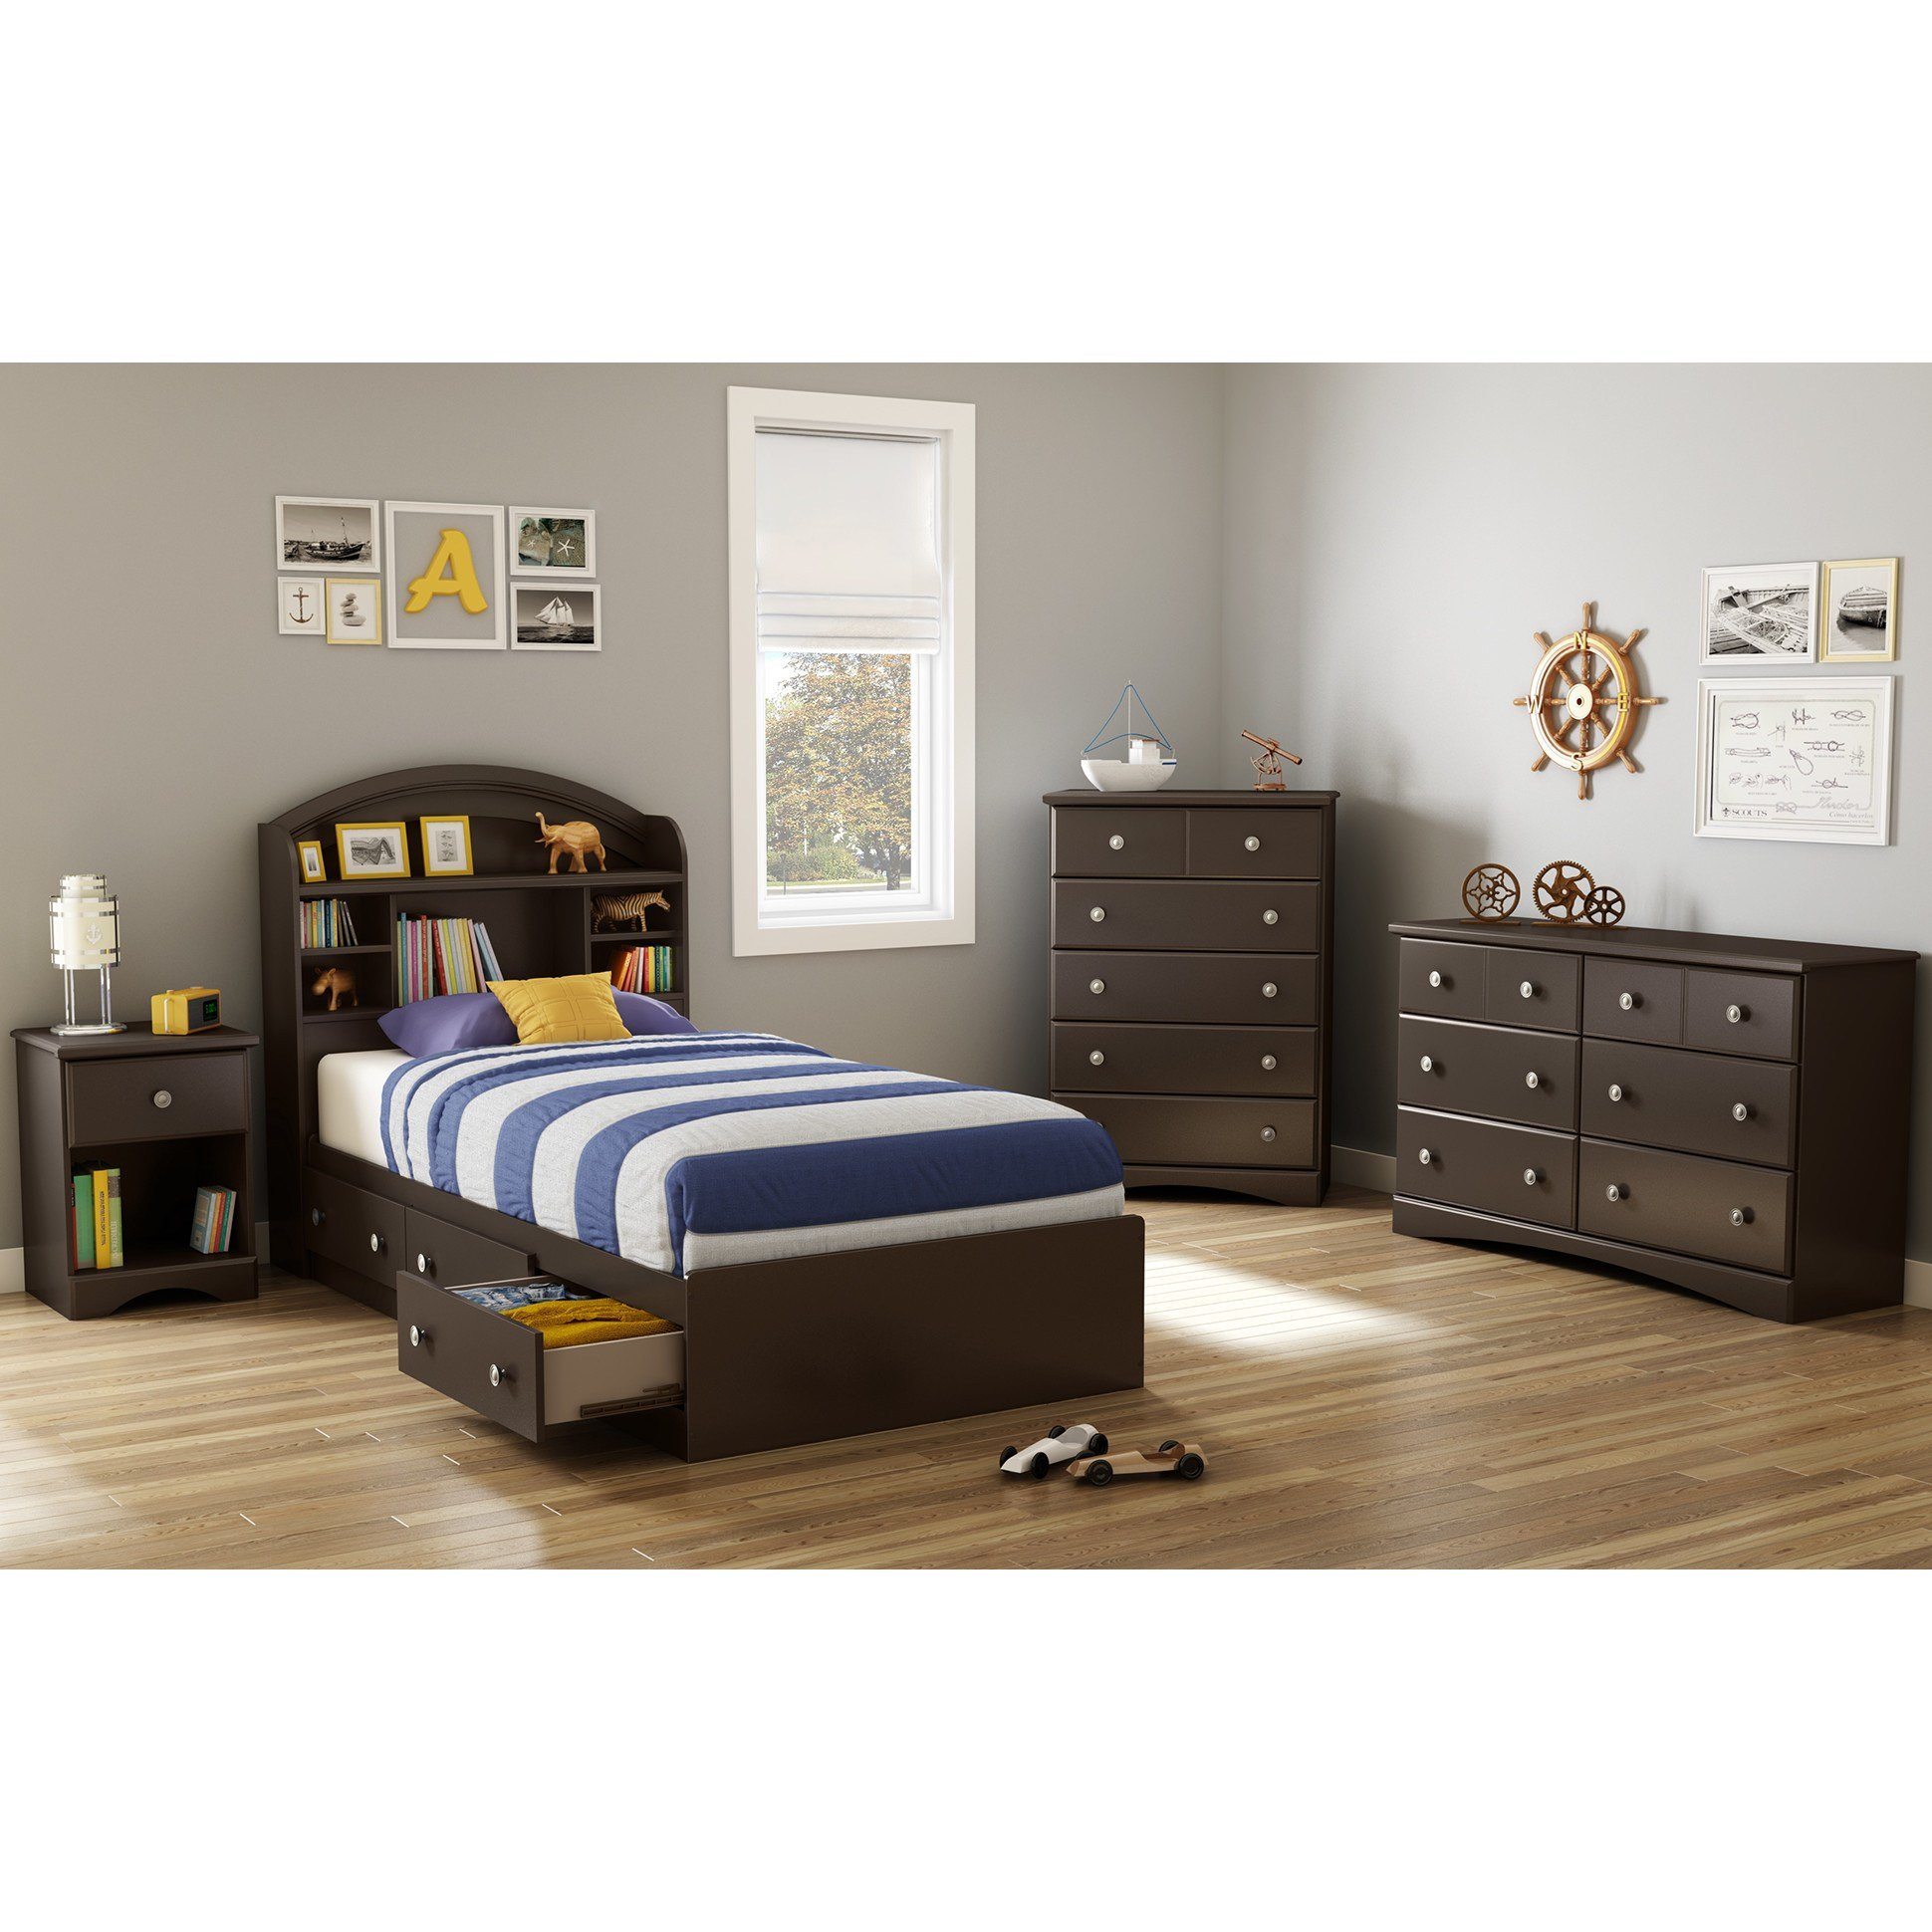 Best South Shore Morning Dew Mate S Bed With Storage Reviews With Pictures